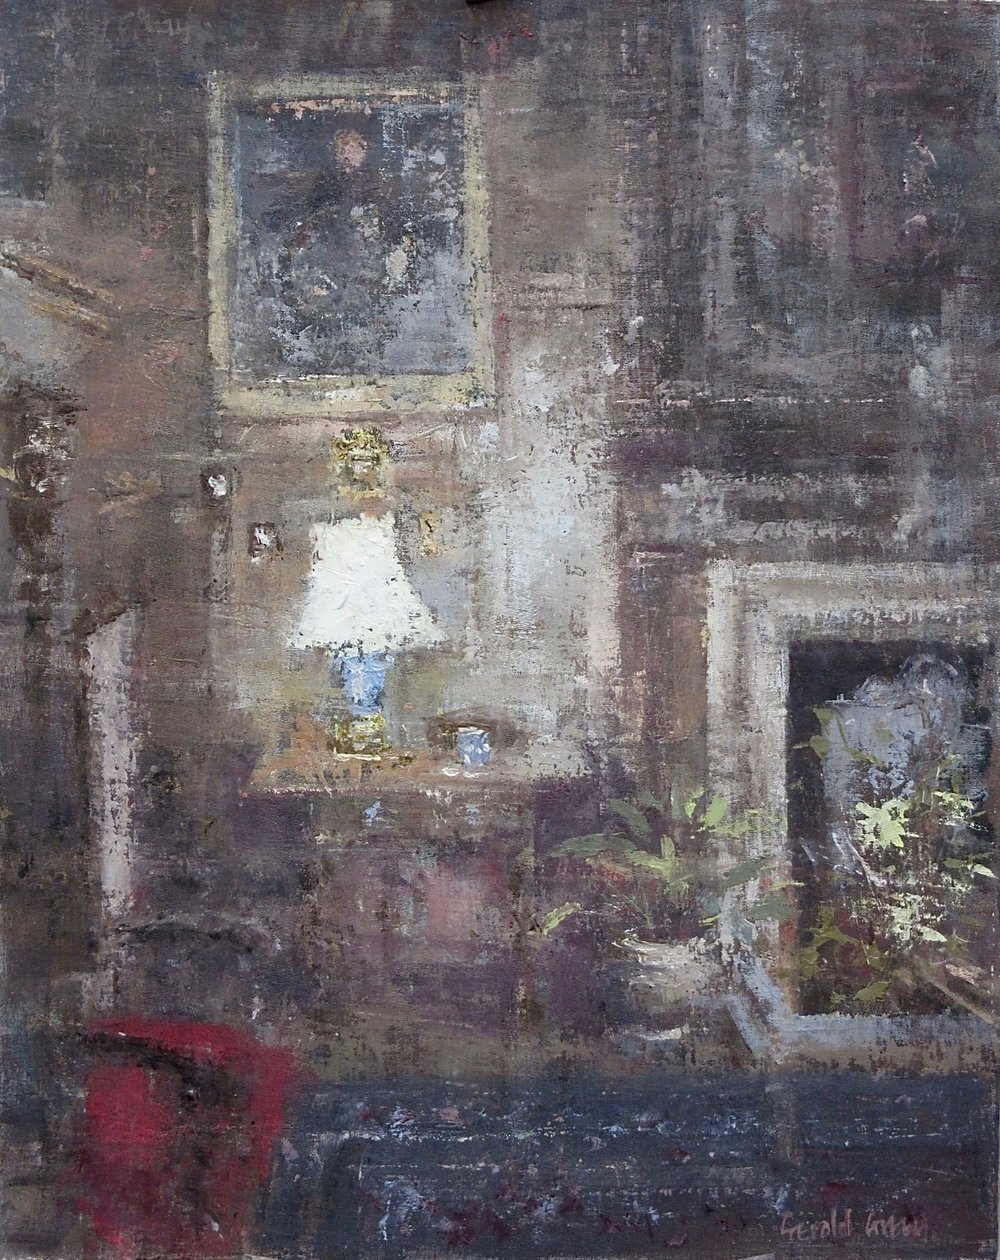 The Blue Table Lamp: 20 x 16 in: £1750